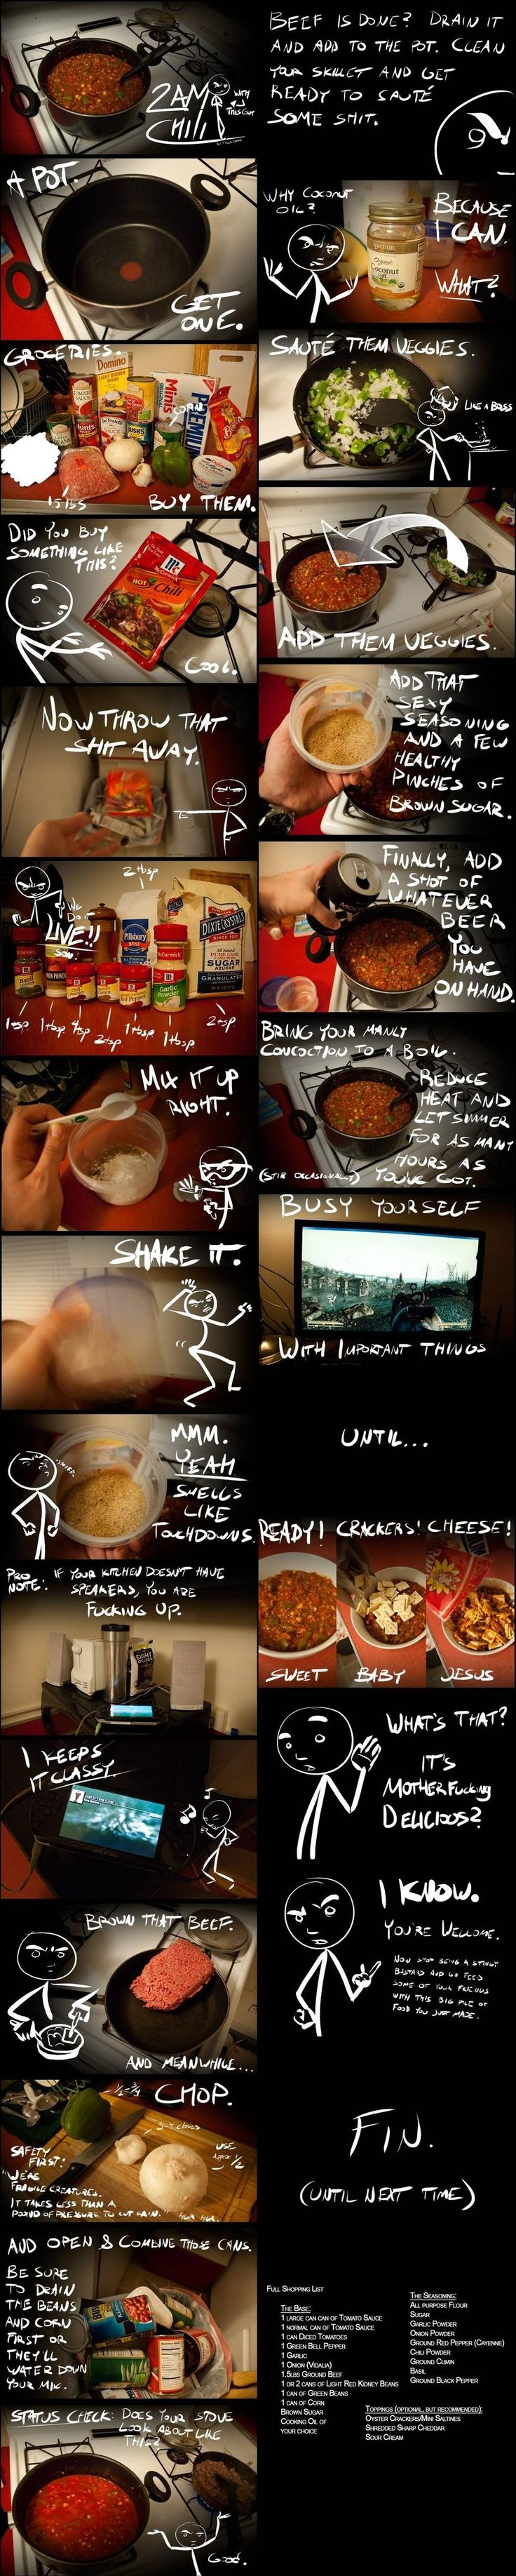 2am chili - this is funny and it is the best chili ever :)